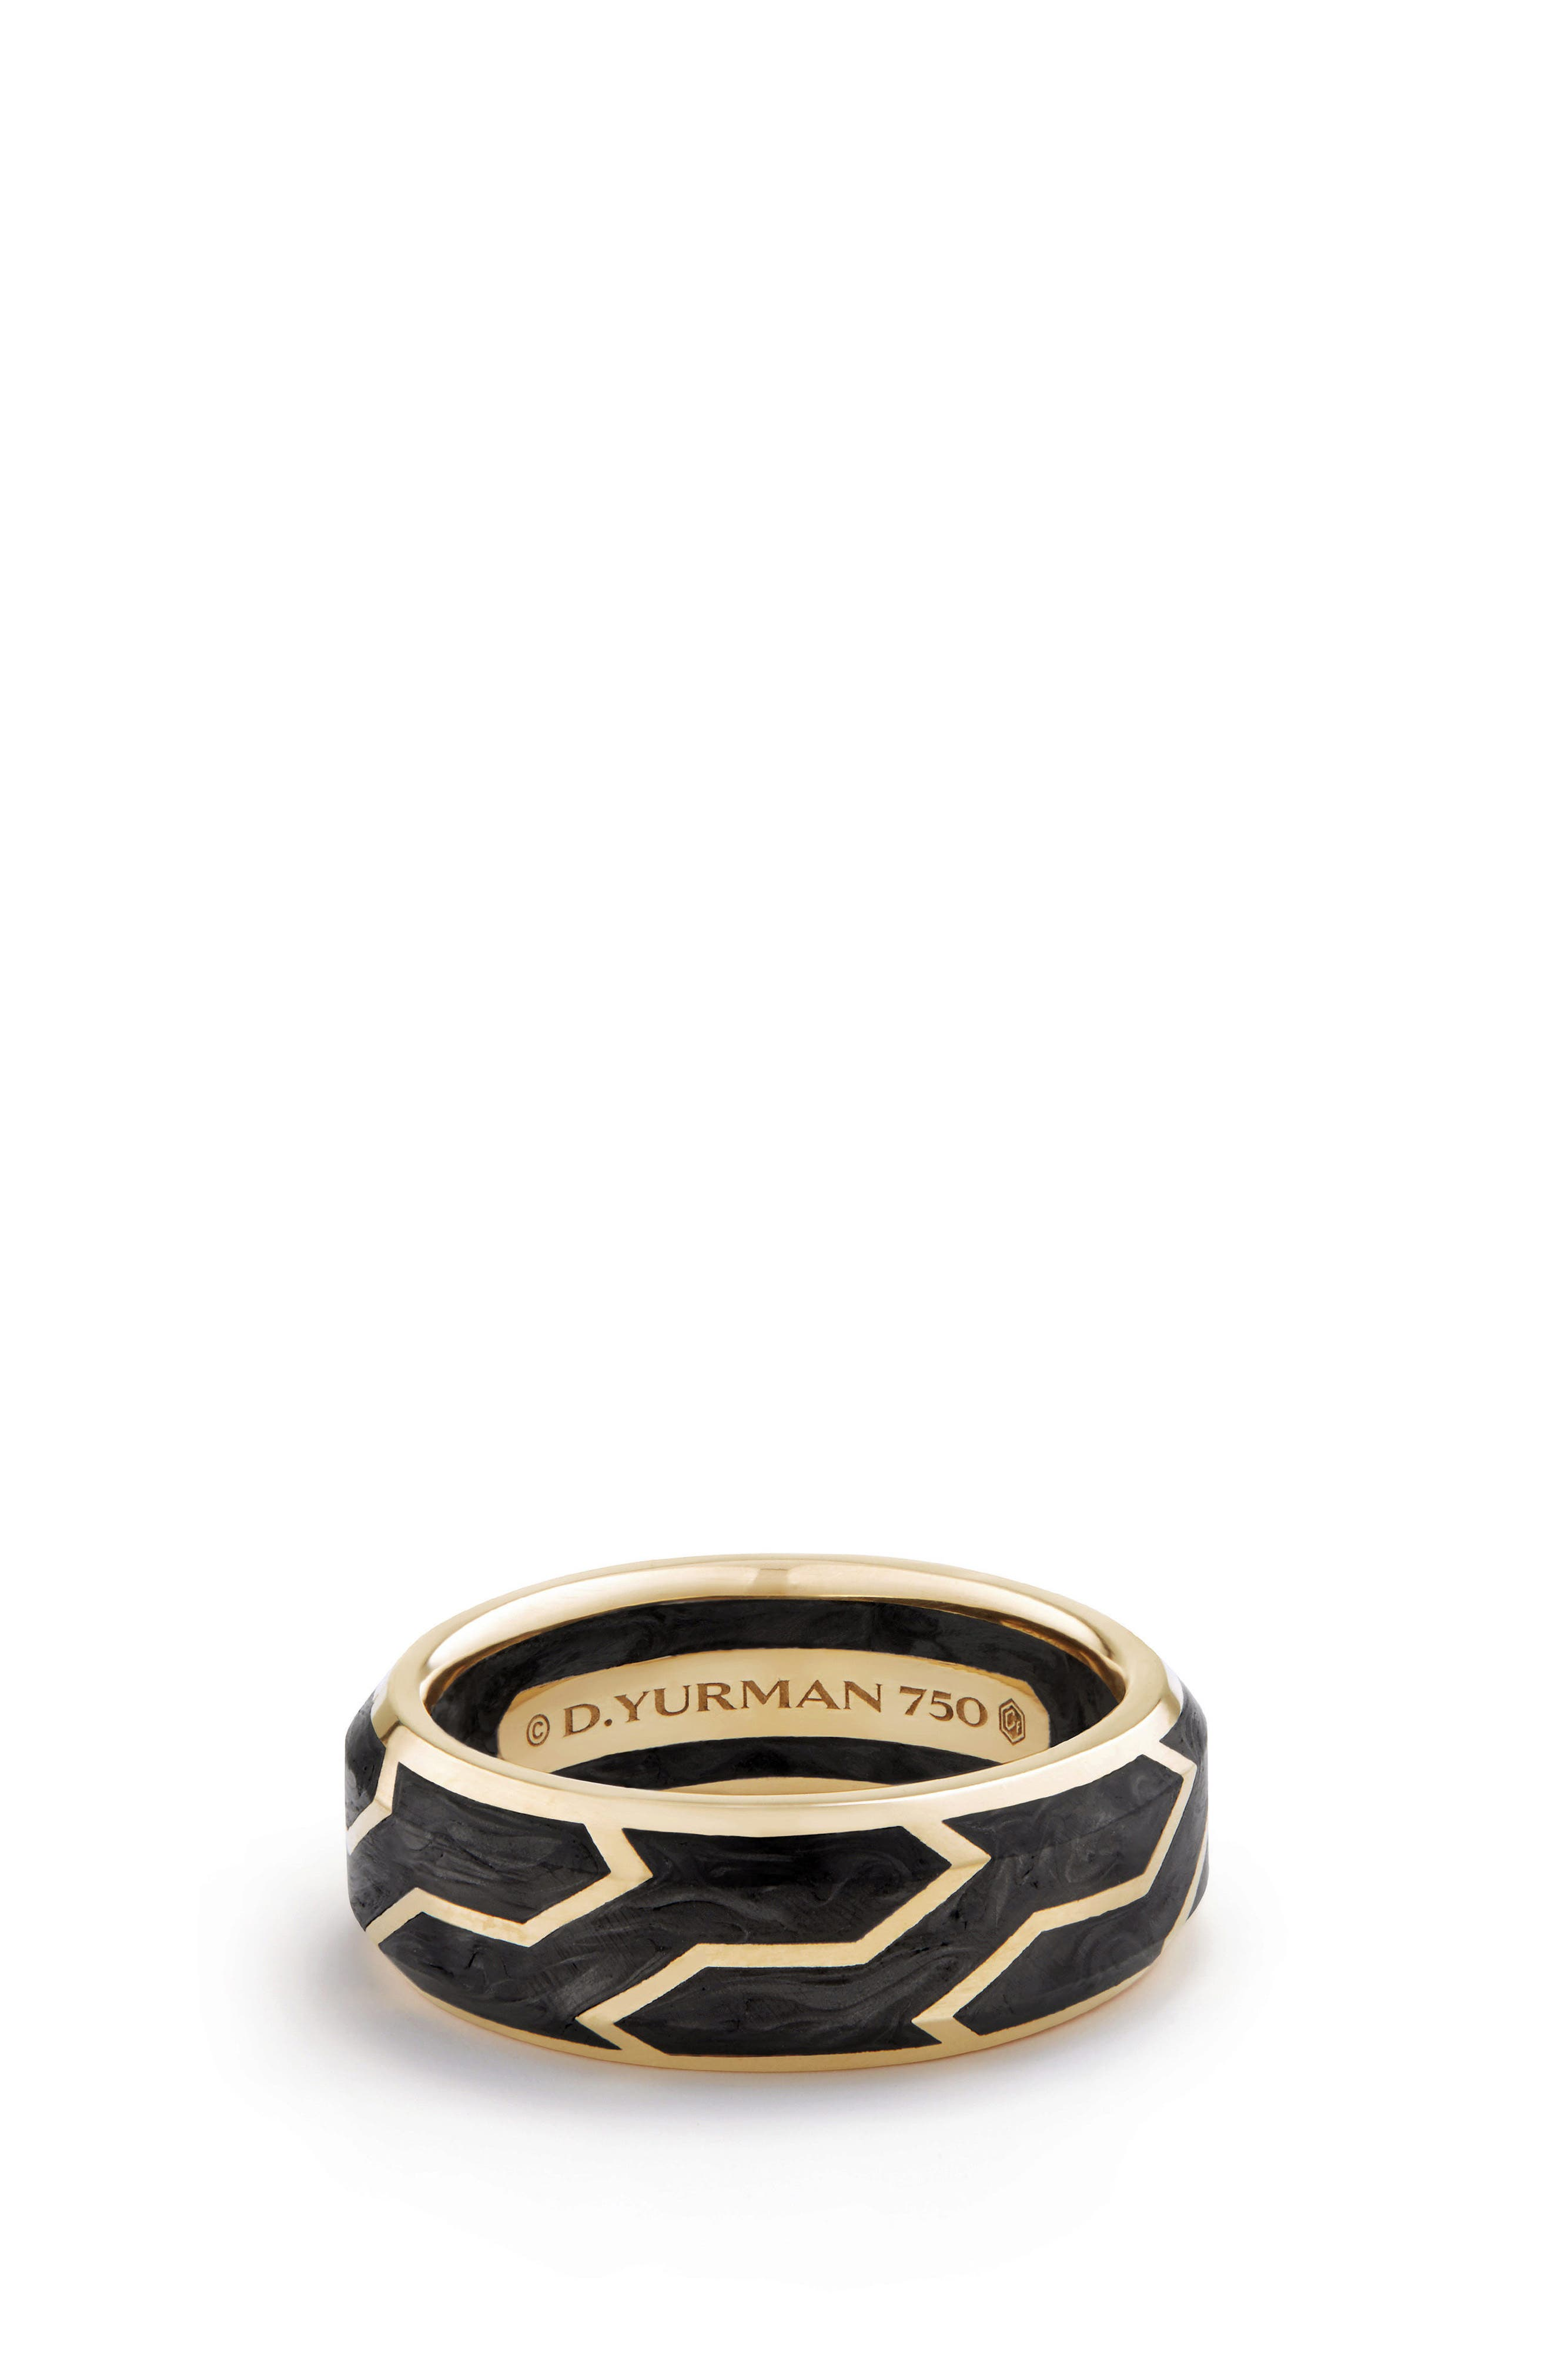 Main Image - David Yurman Forged Carbon Band Ring in 18K Gold, 8.5mm